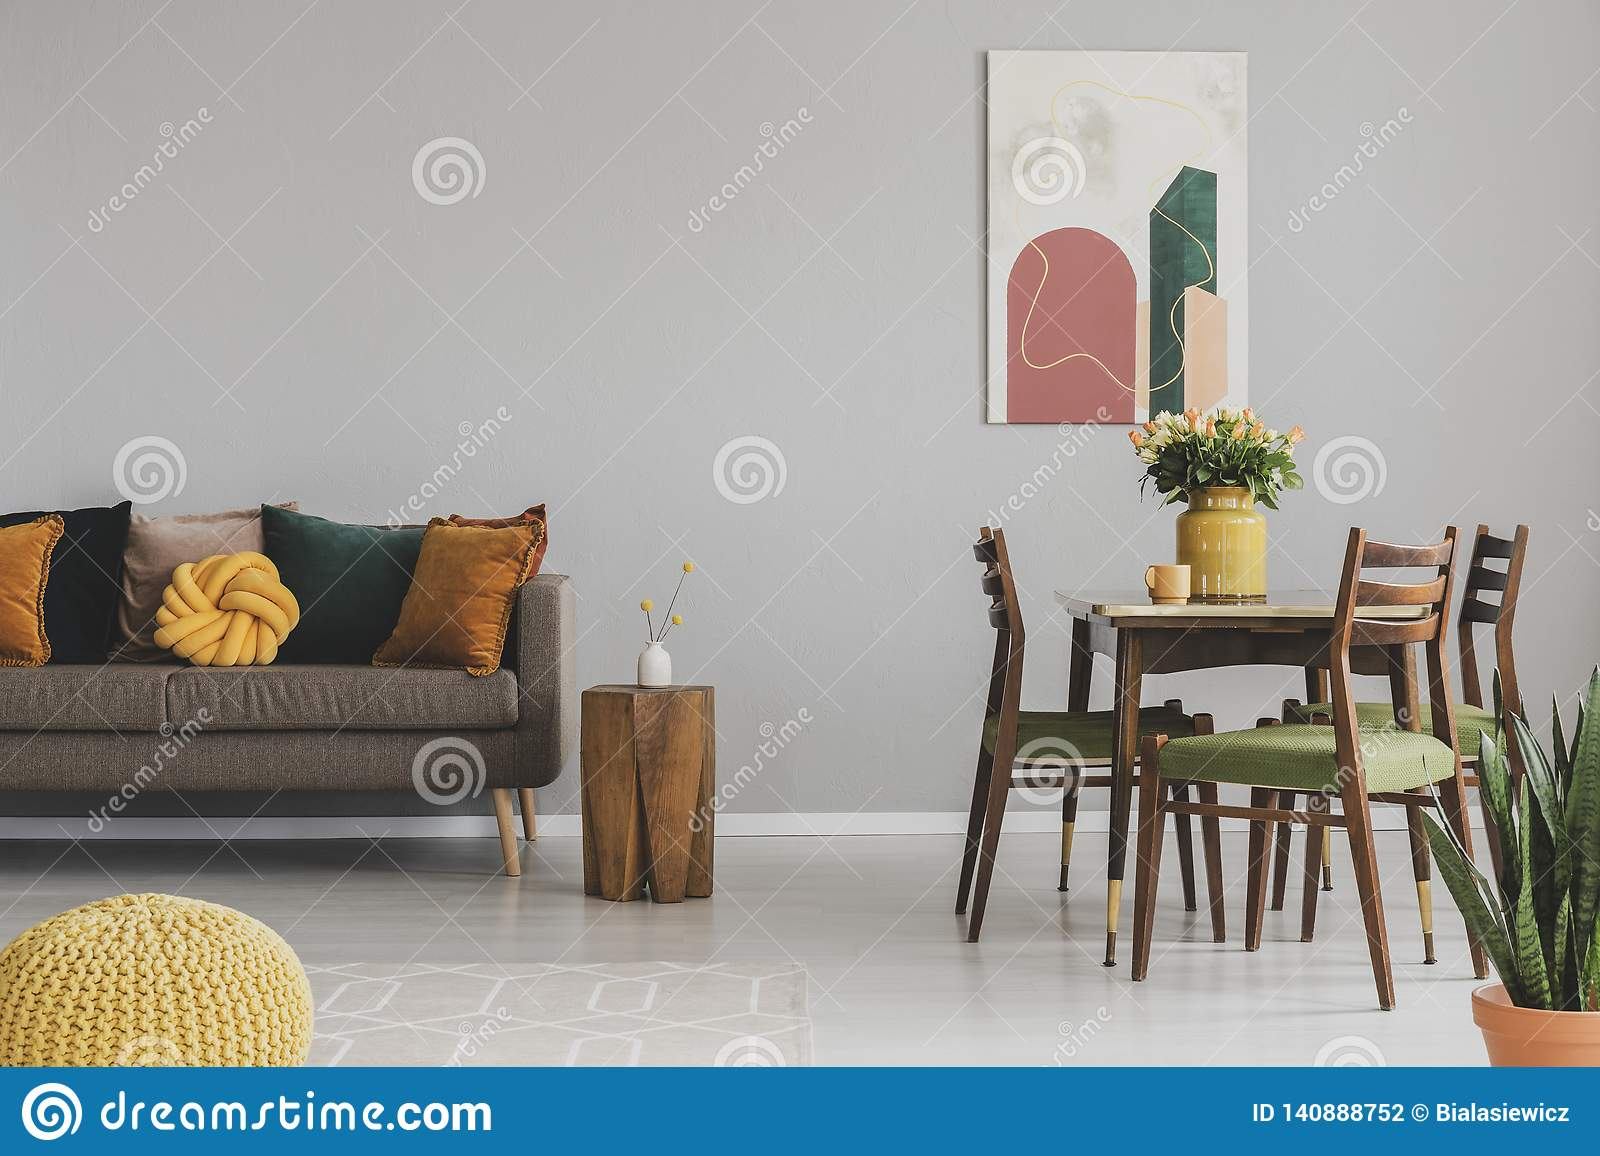 Vintage living and dining room interior with retro table with chairs and comfortable sofa with pillows